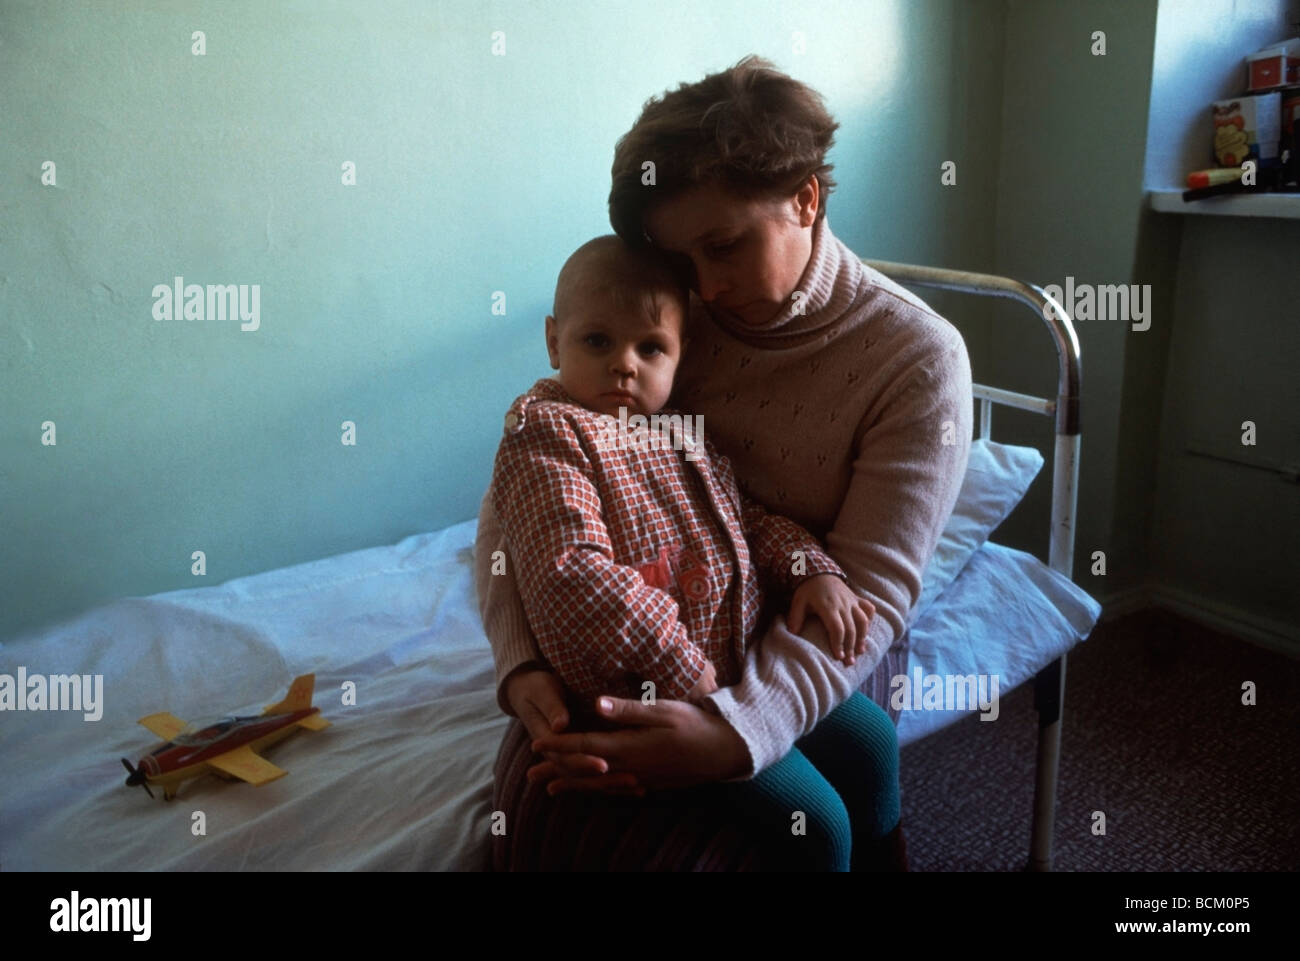 Ill child and Mother at the Children's Hematology Center in Minsk, Byelorussia - Stock Image